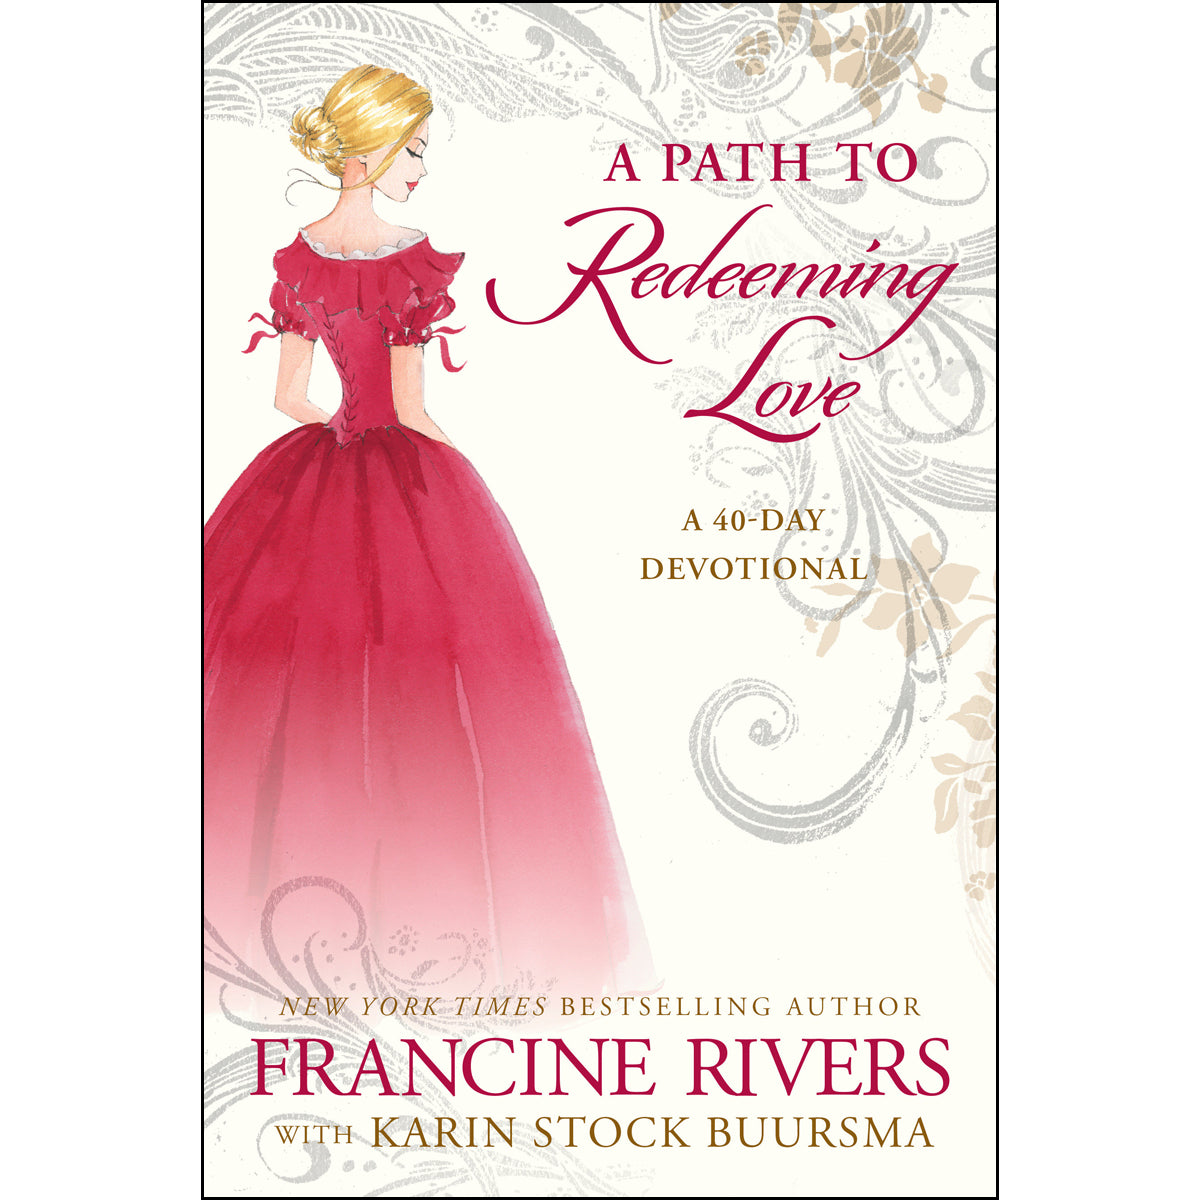 A Path To Redeeming Love (Hardcover)